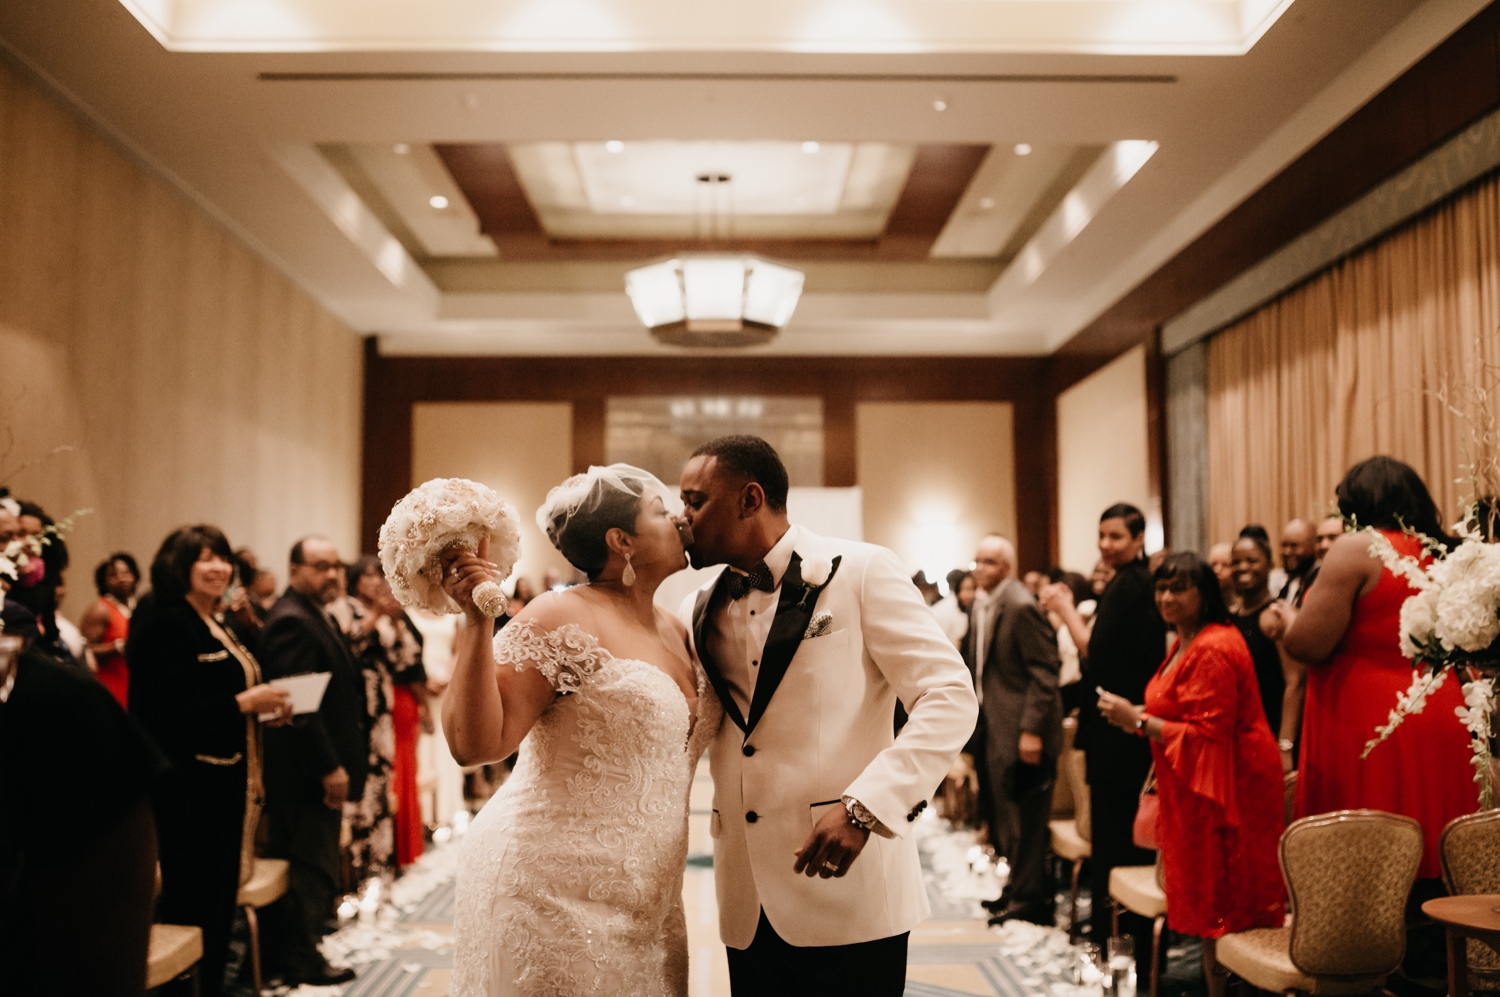 42_Ritz-carlton-wedding_charlotteNC_charlotteweddingphotographer.jpg